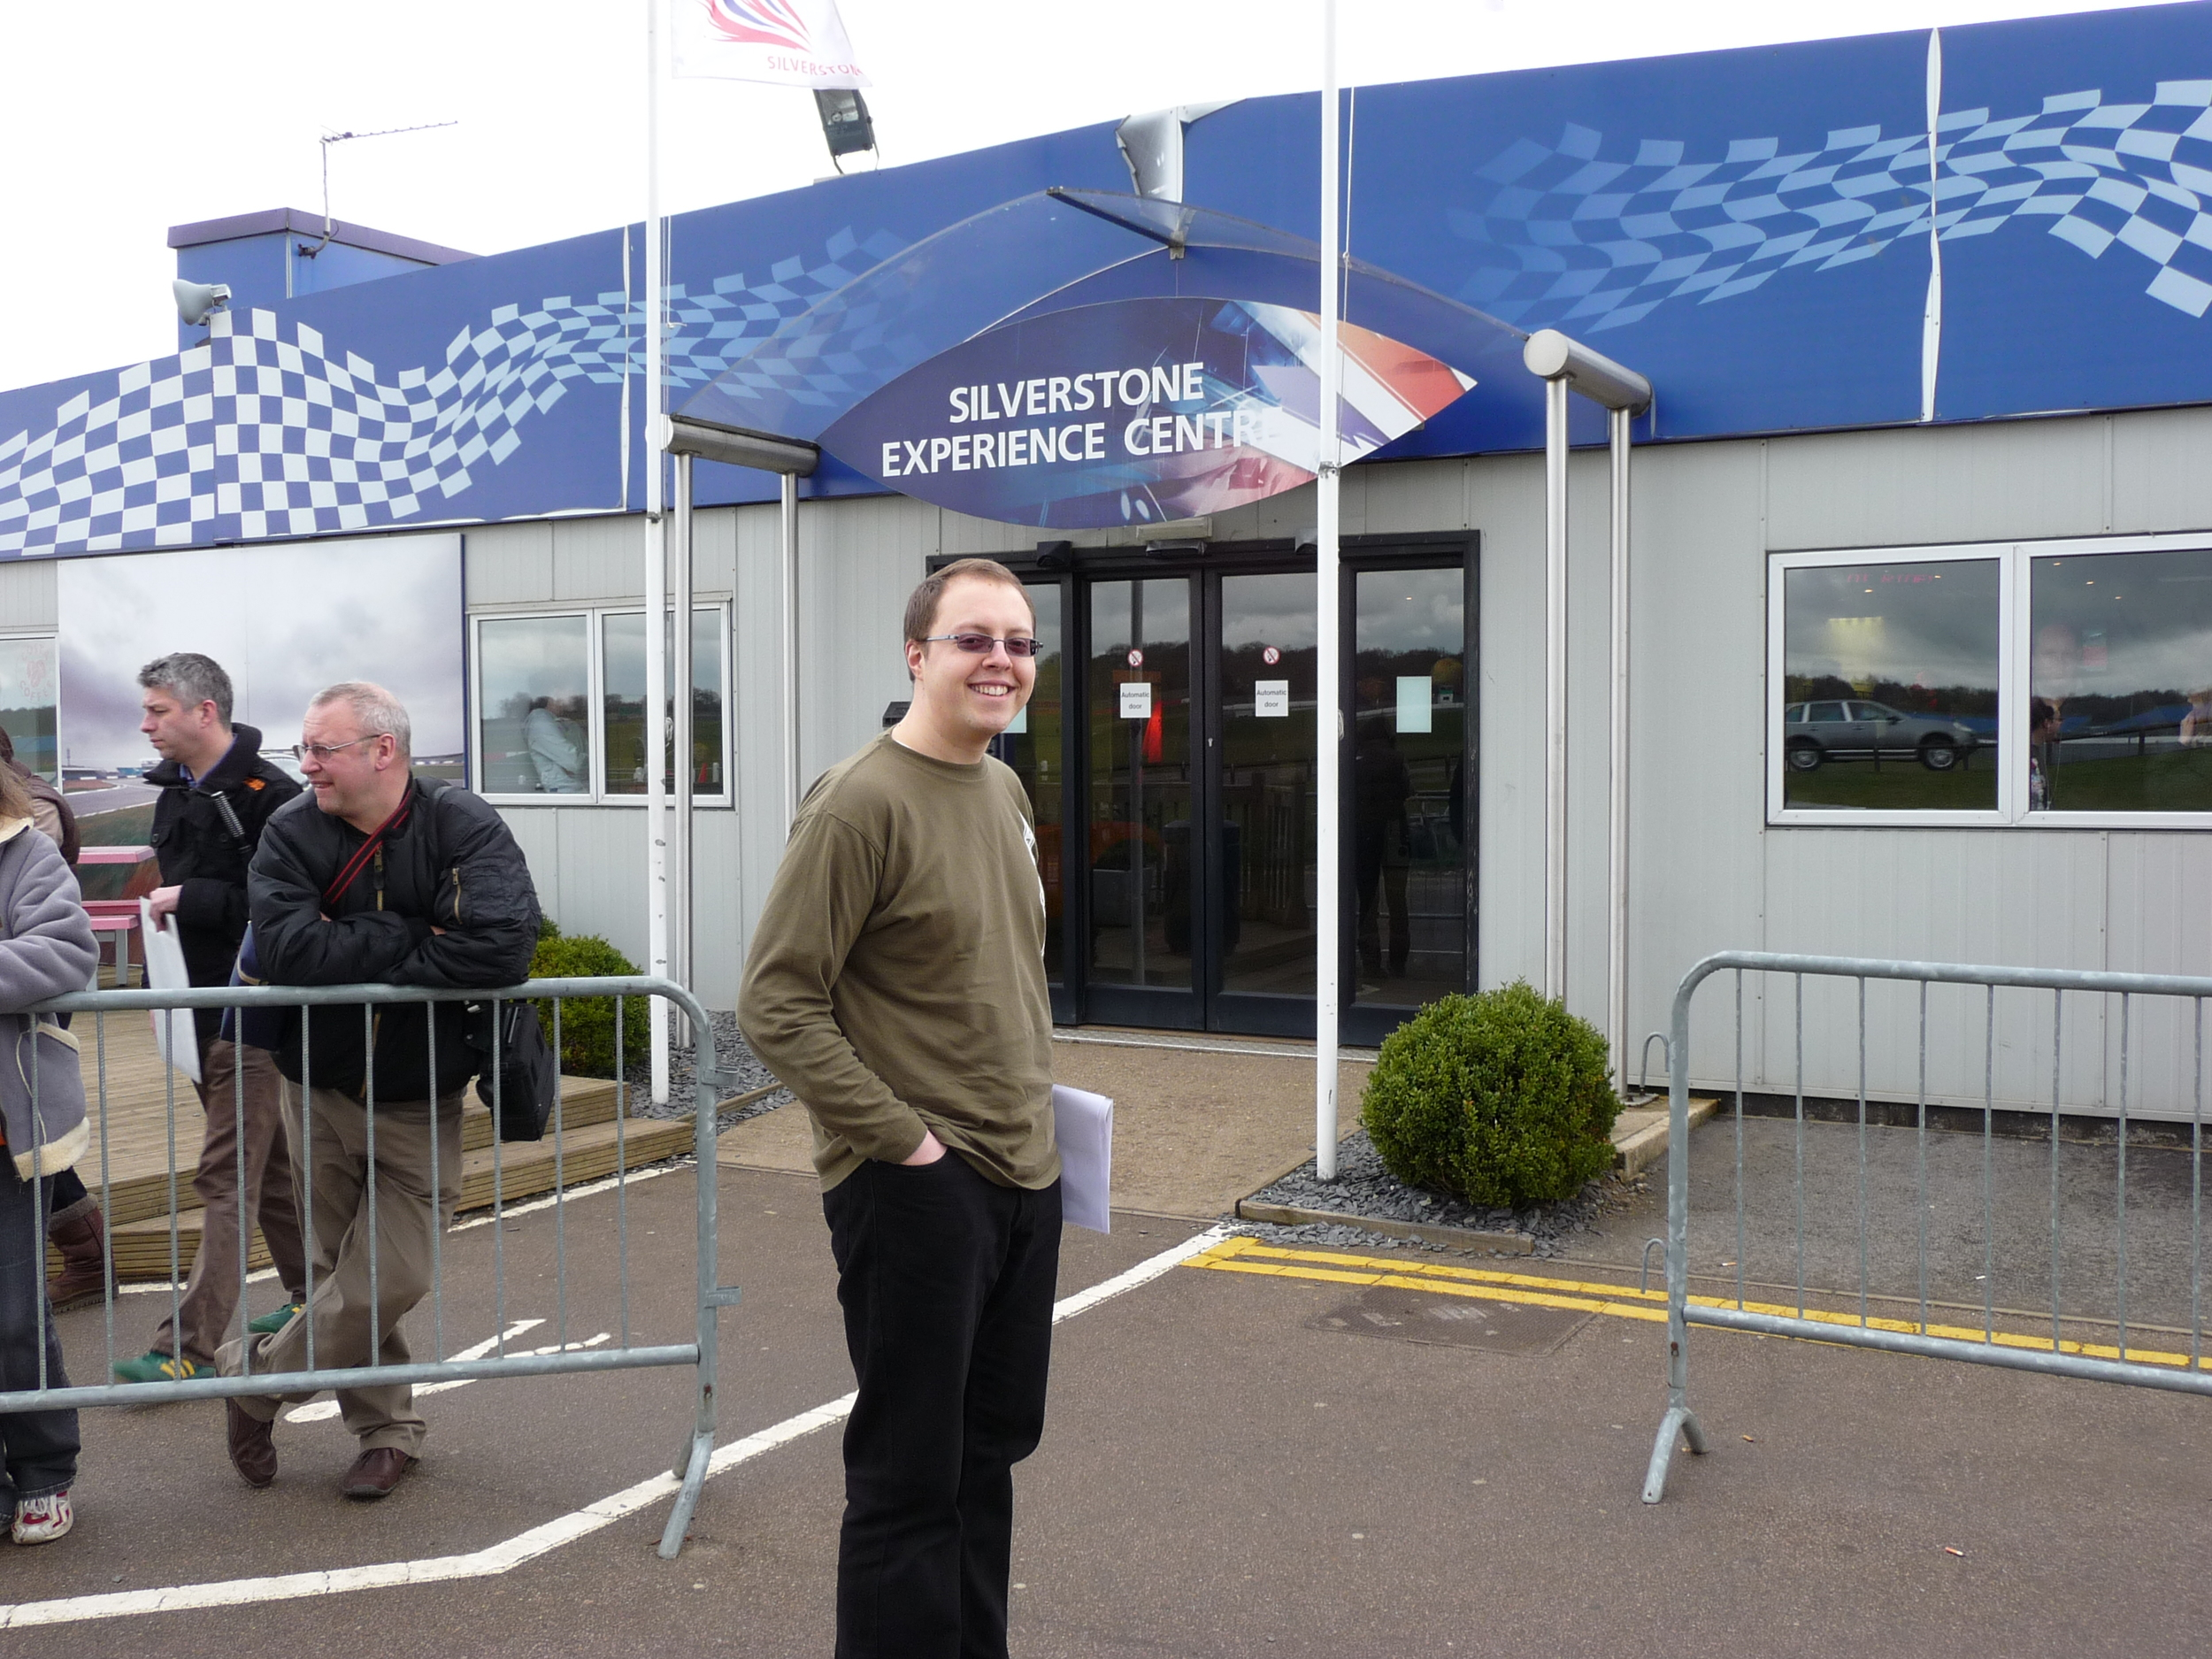 The Writing Man arrives at Silverstone for his Ferrari driving experience